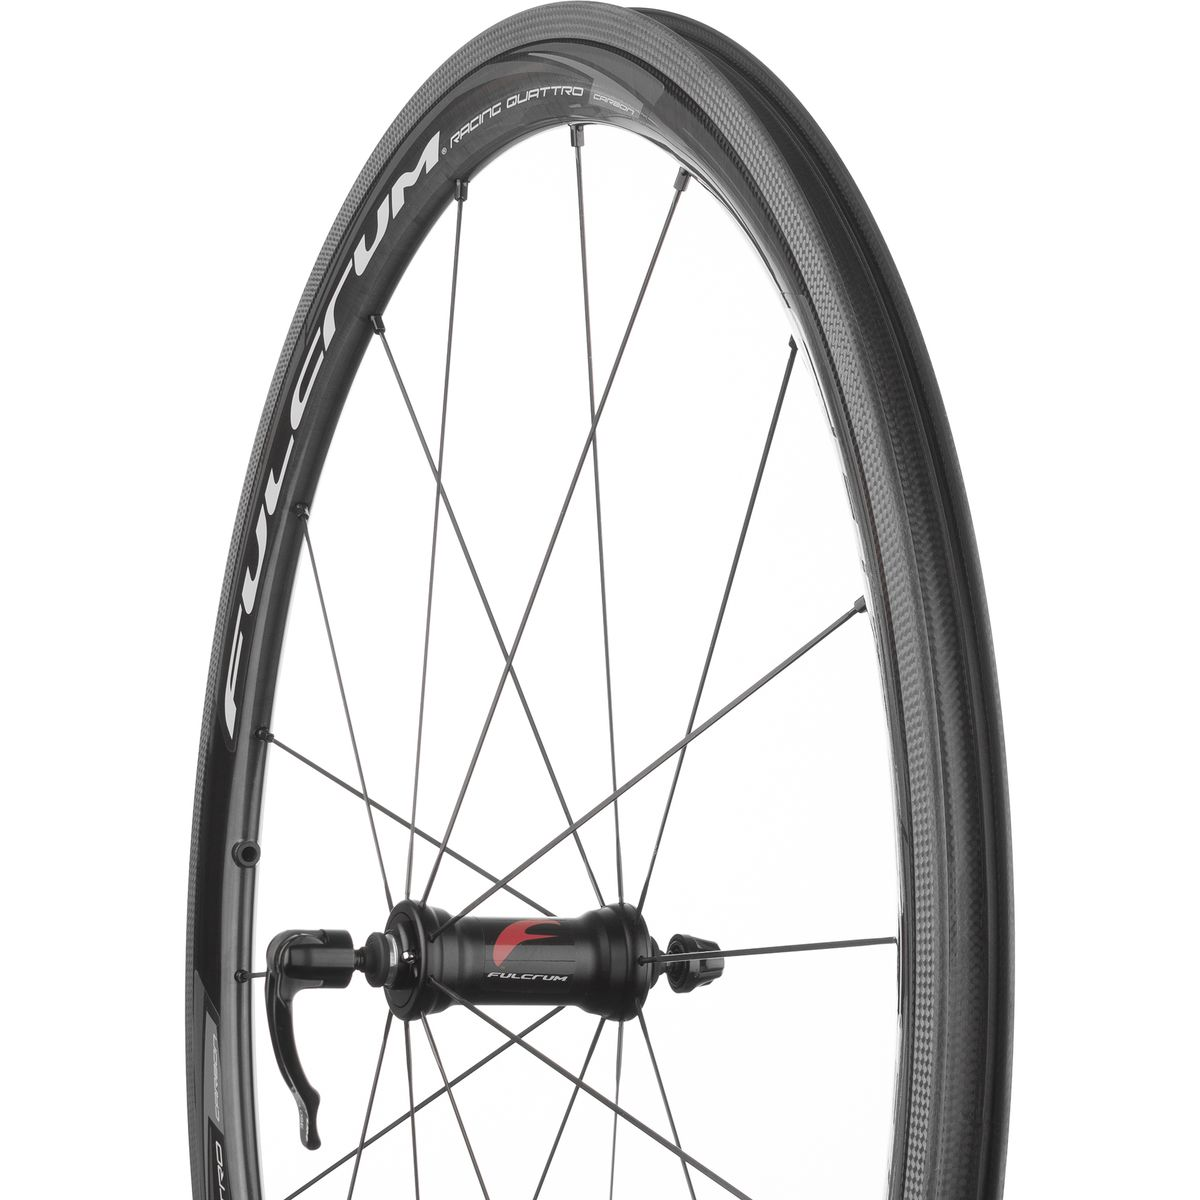 Fulcrum Racing Quattro Carbon Wheelset Clincher UD Carbon Campagnolo